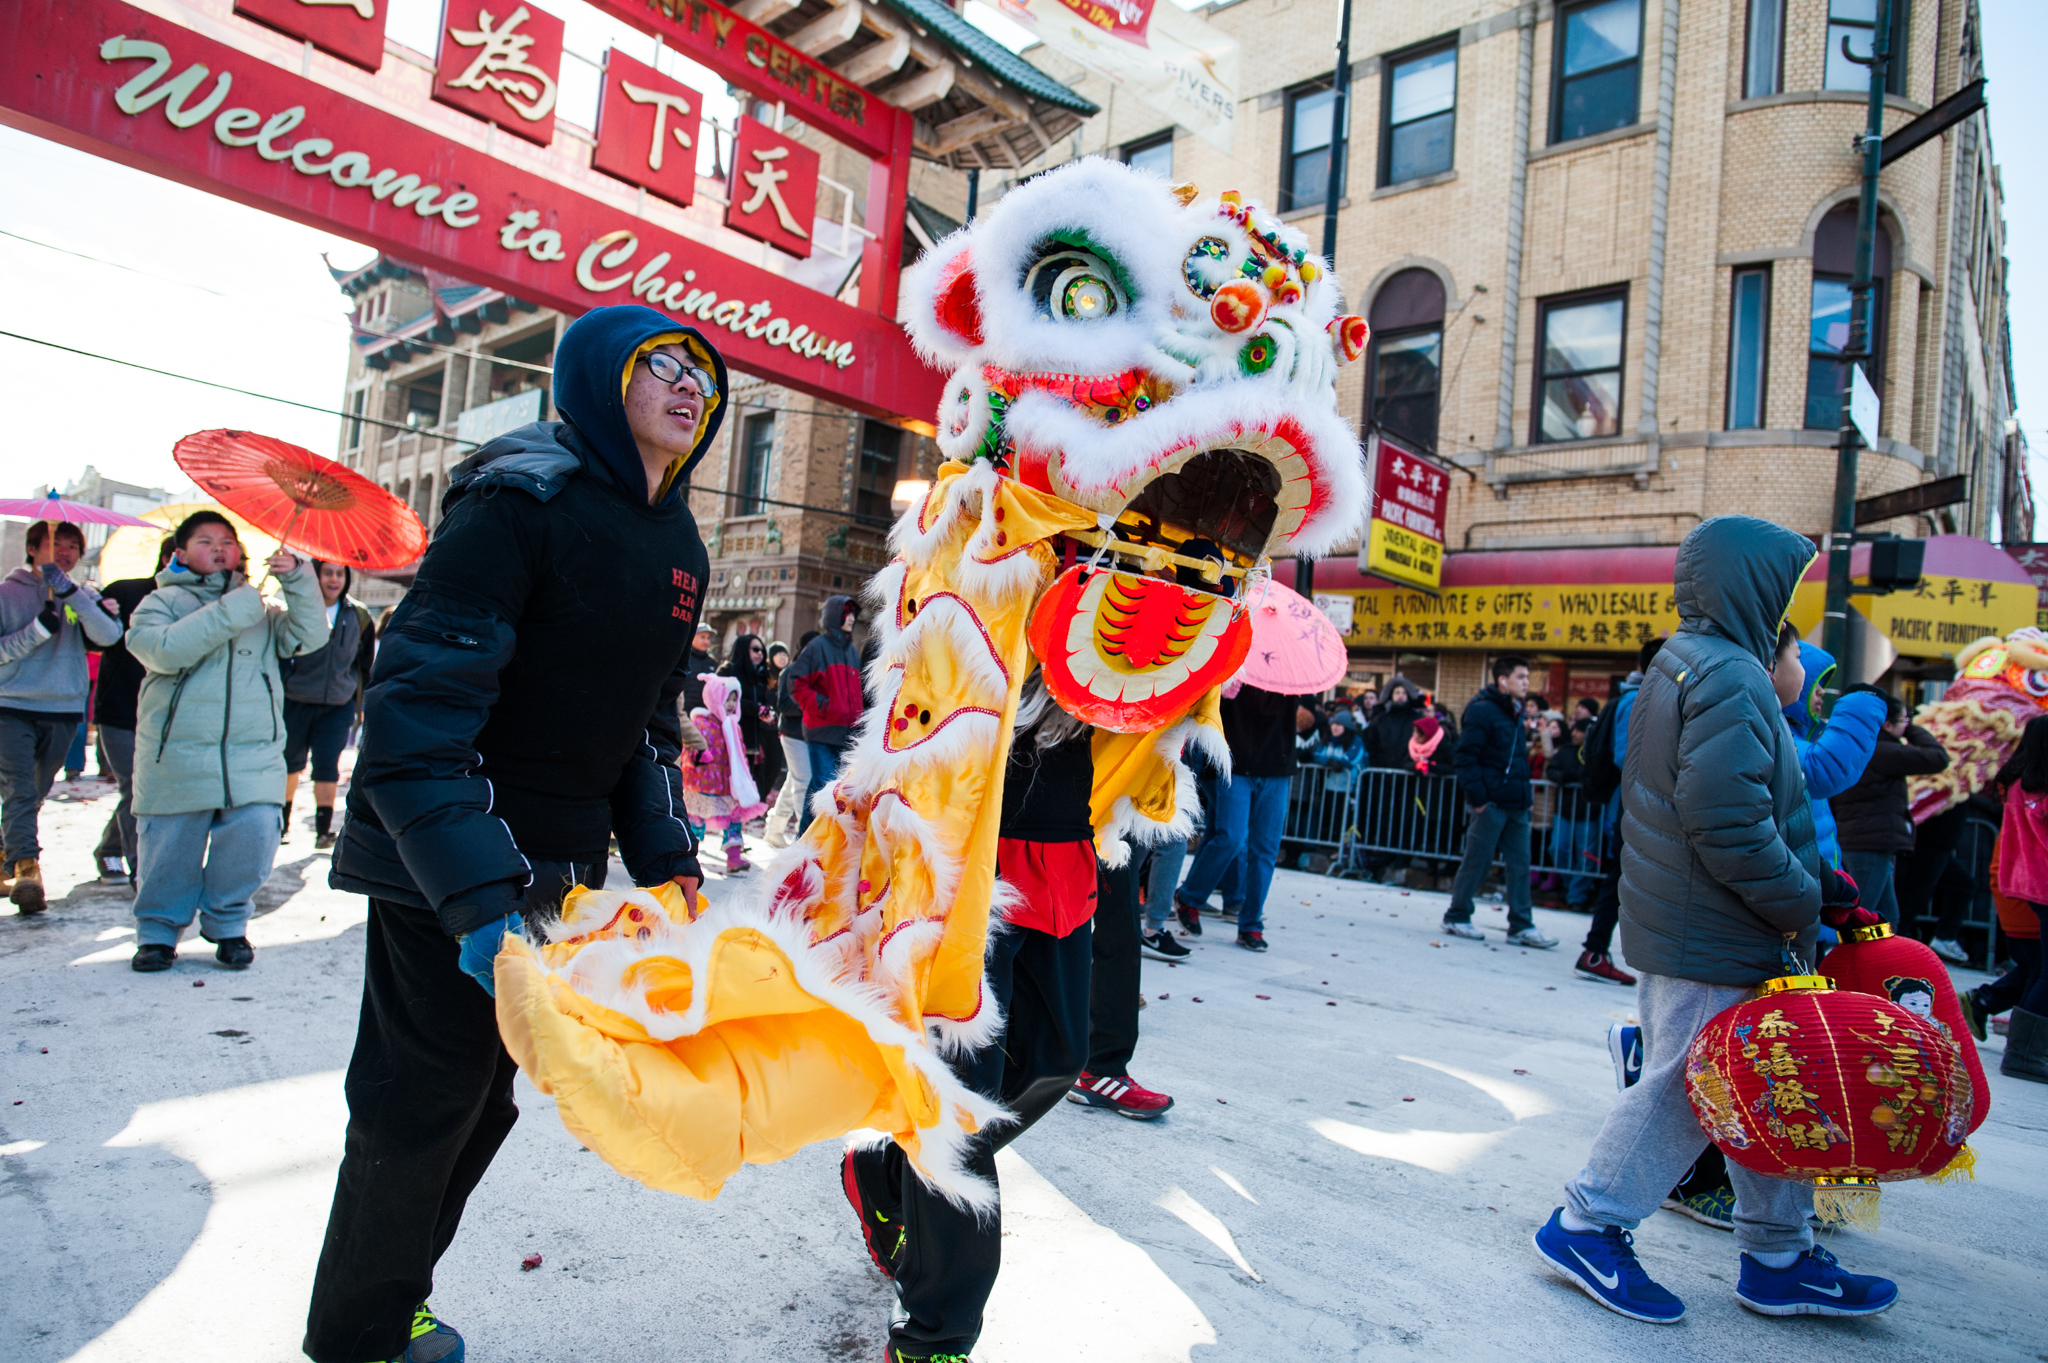 Chinese New Year parades and celebrations in Chicago